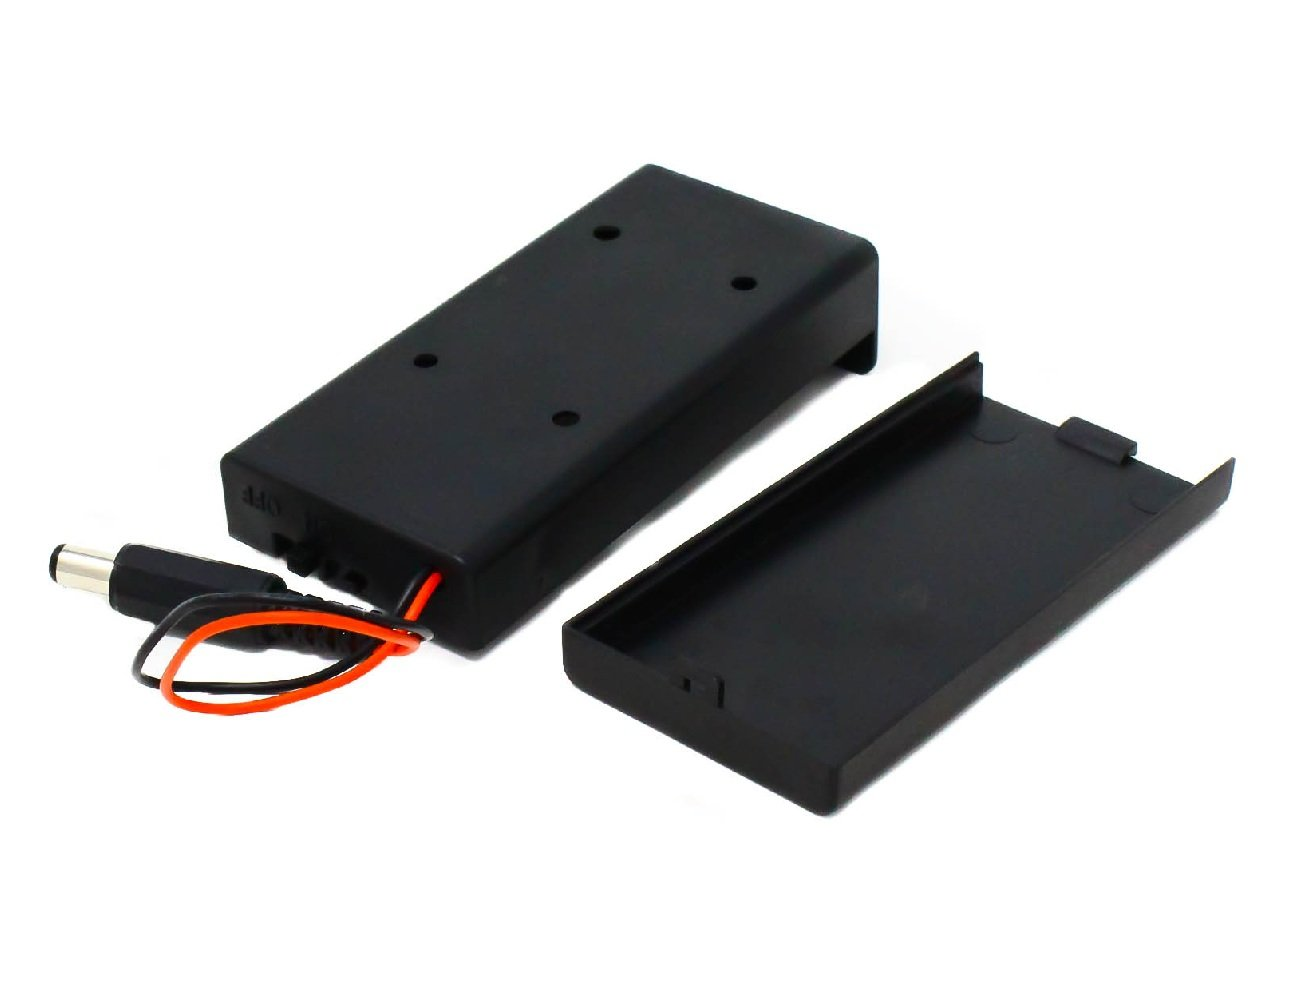 18650 x 2 battery holder with cover and OnOff Switch With DC jack